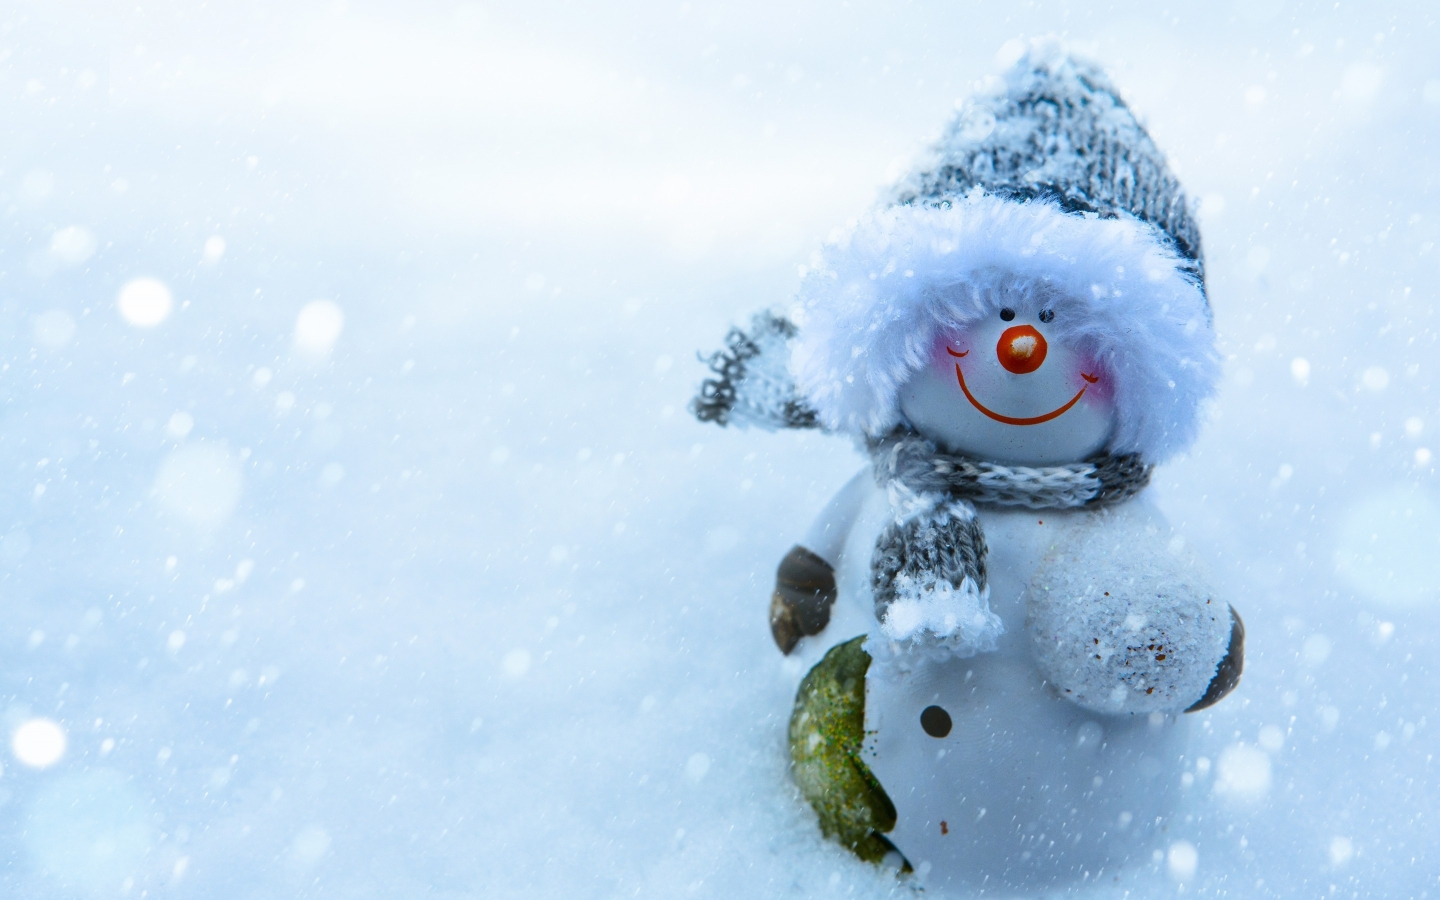 Snowman Smiling for 1440 x 900 widescreen resolution